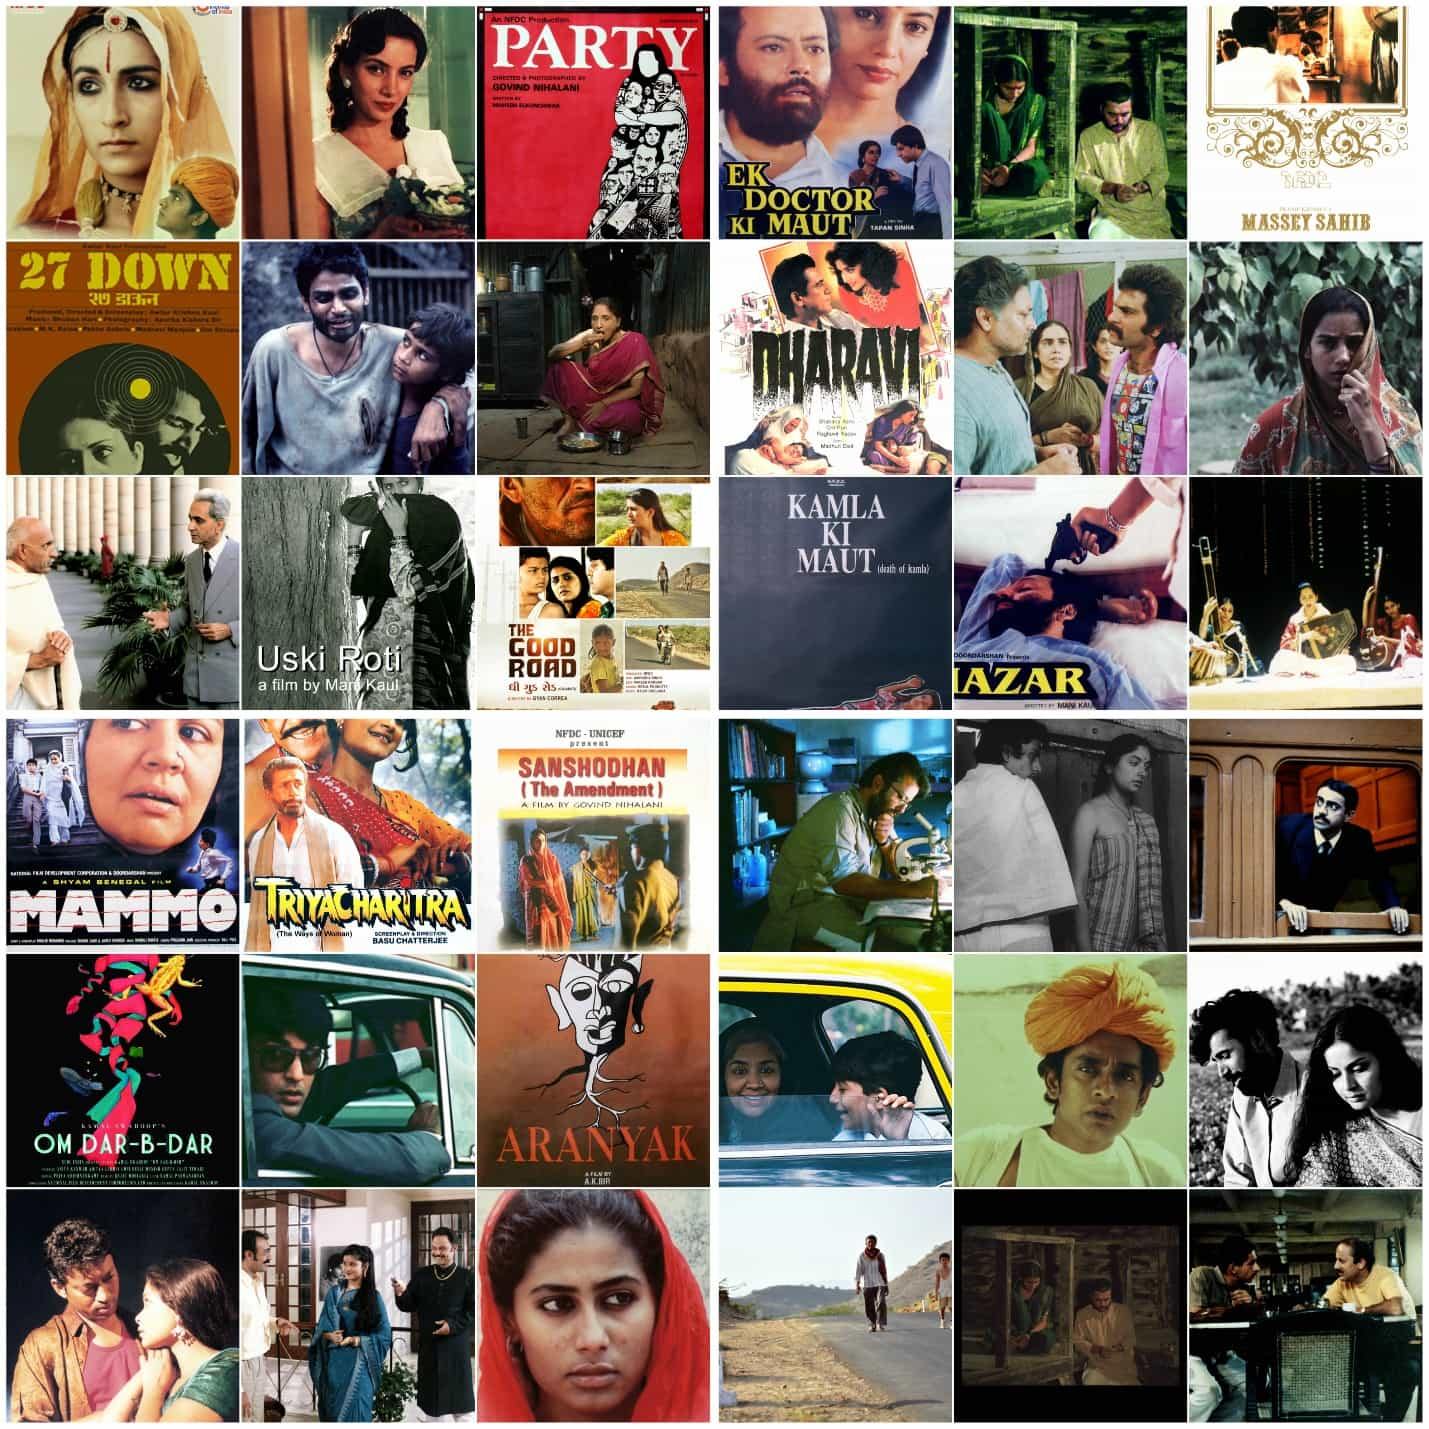 Zee classic india finest movies list 2016